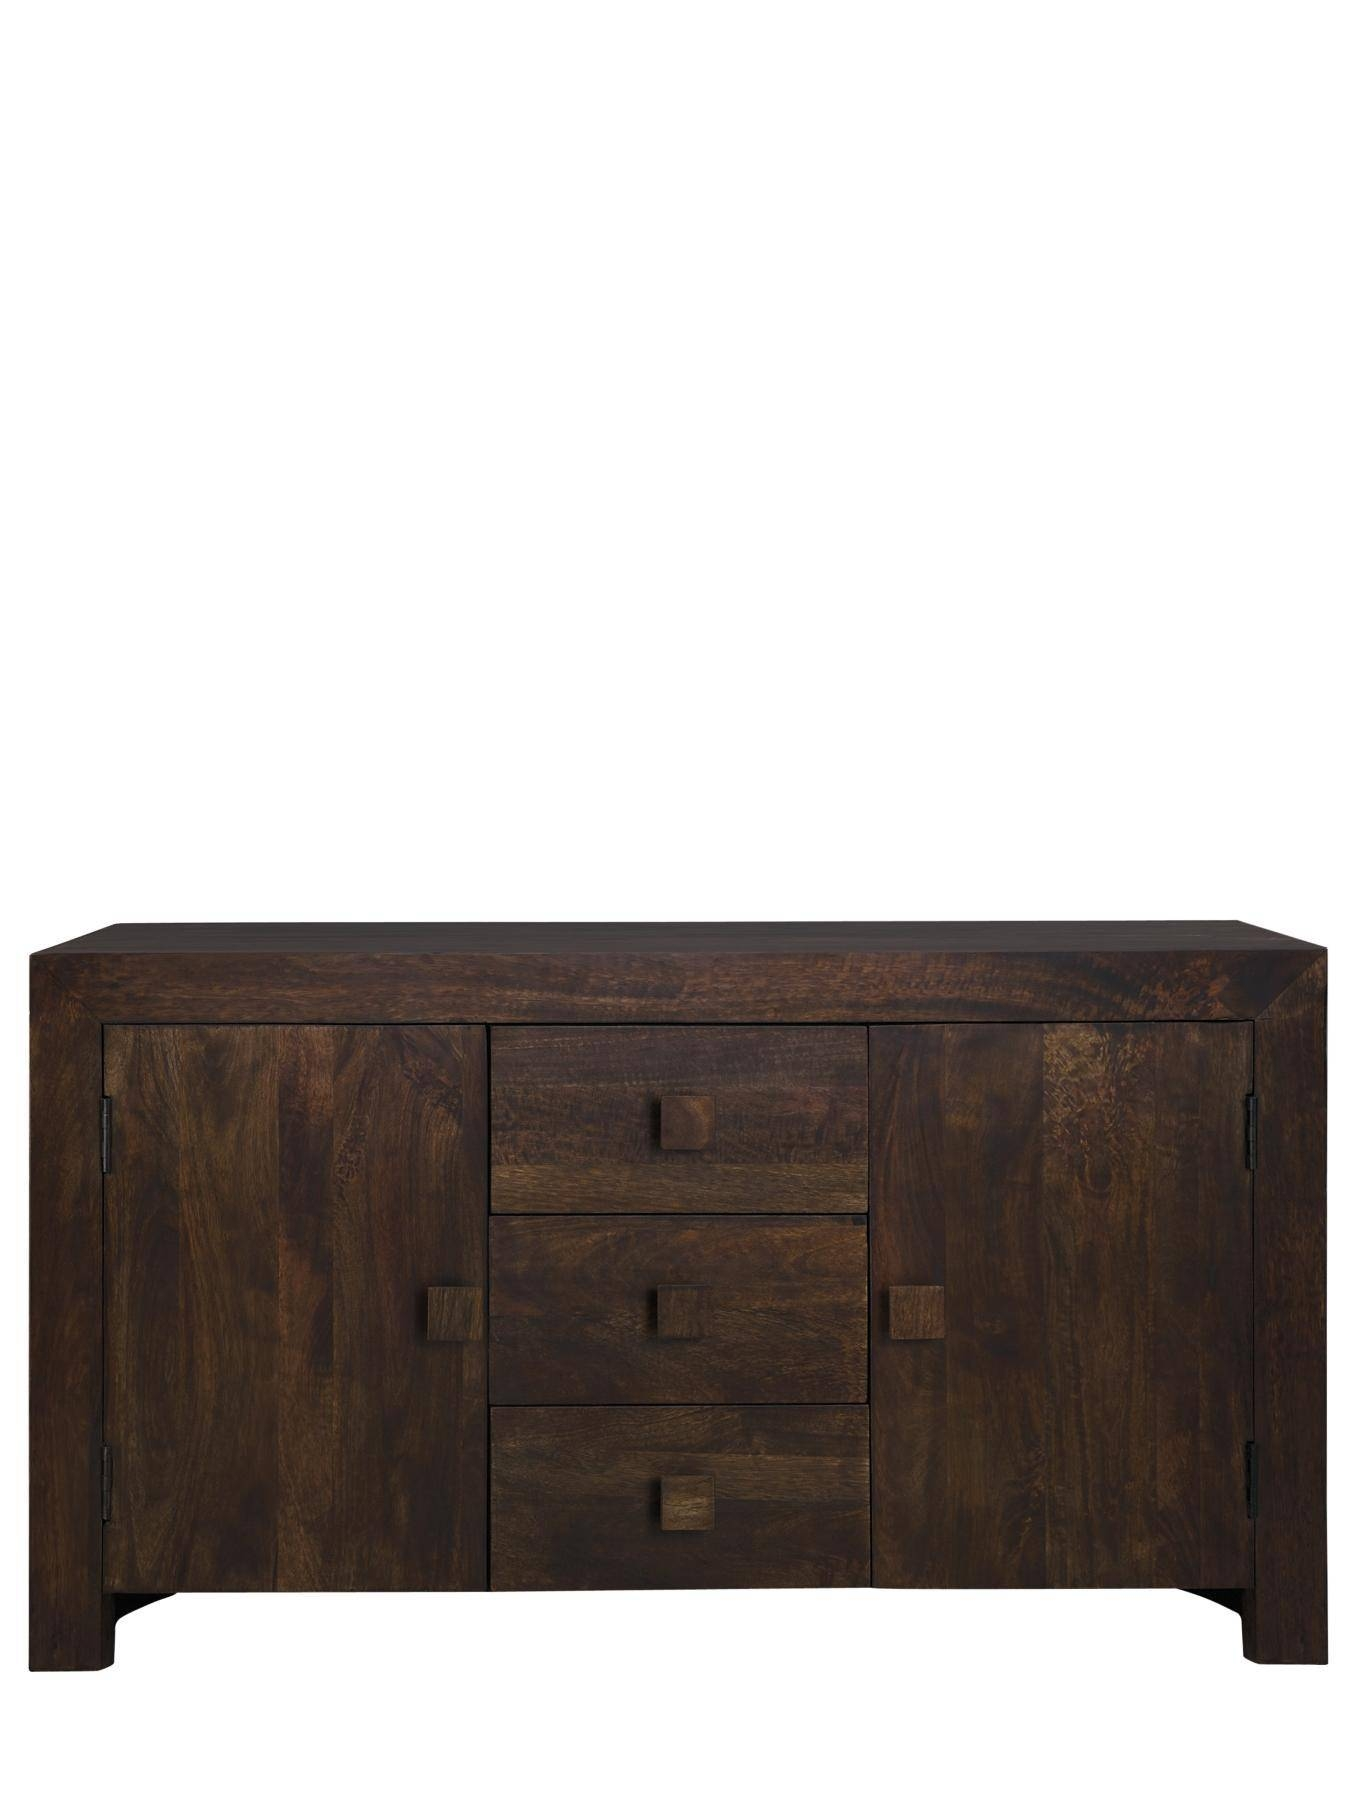 Dakota Ready Assembled Wide Sideboard, Light Mango,dark Brown Intended For Ready Assembled Sideboards (#10 of 20)